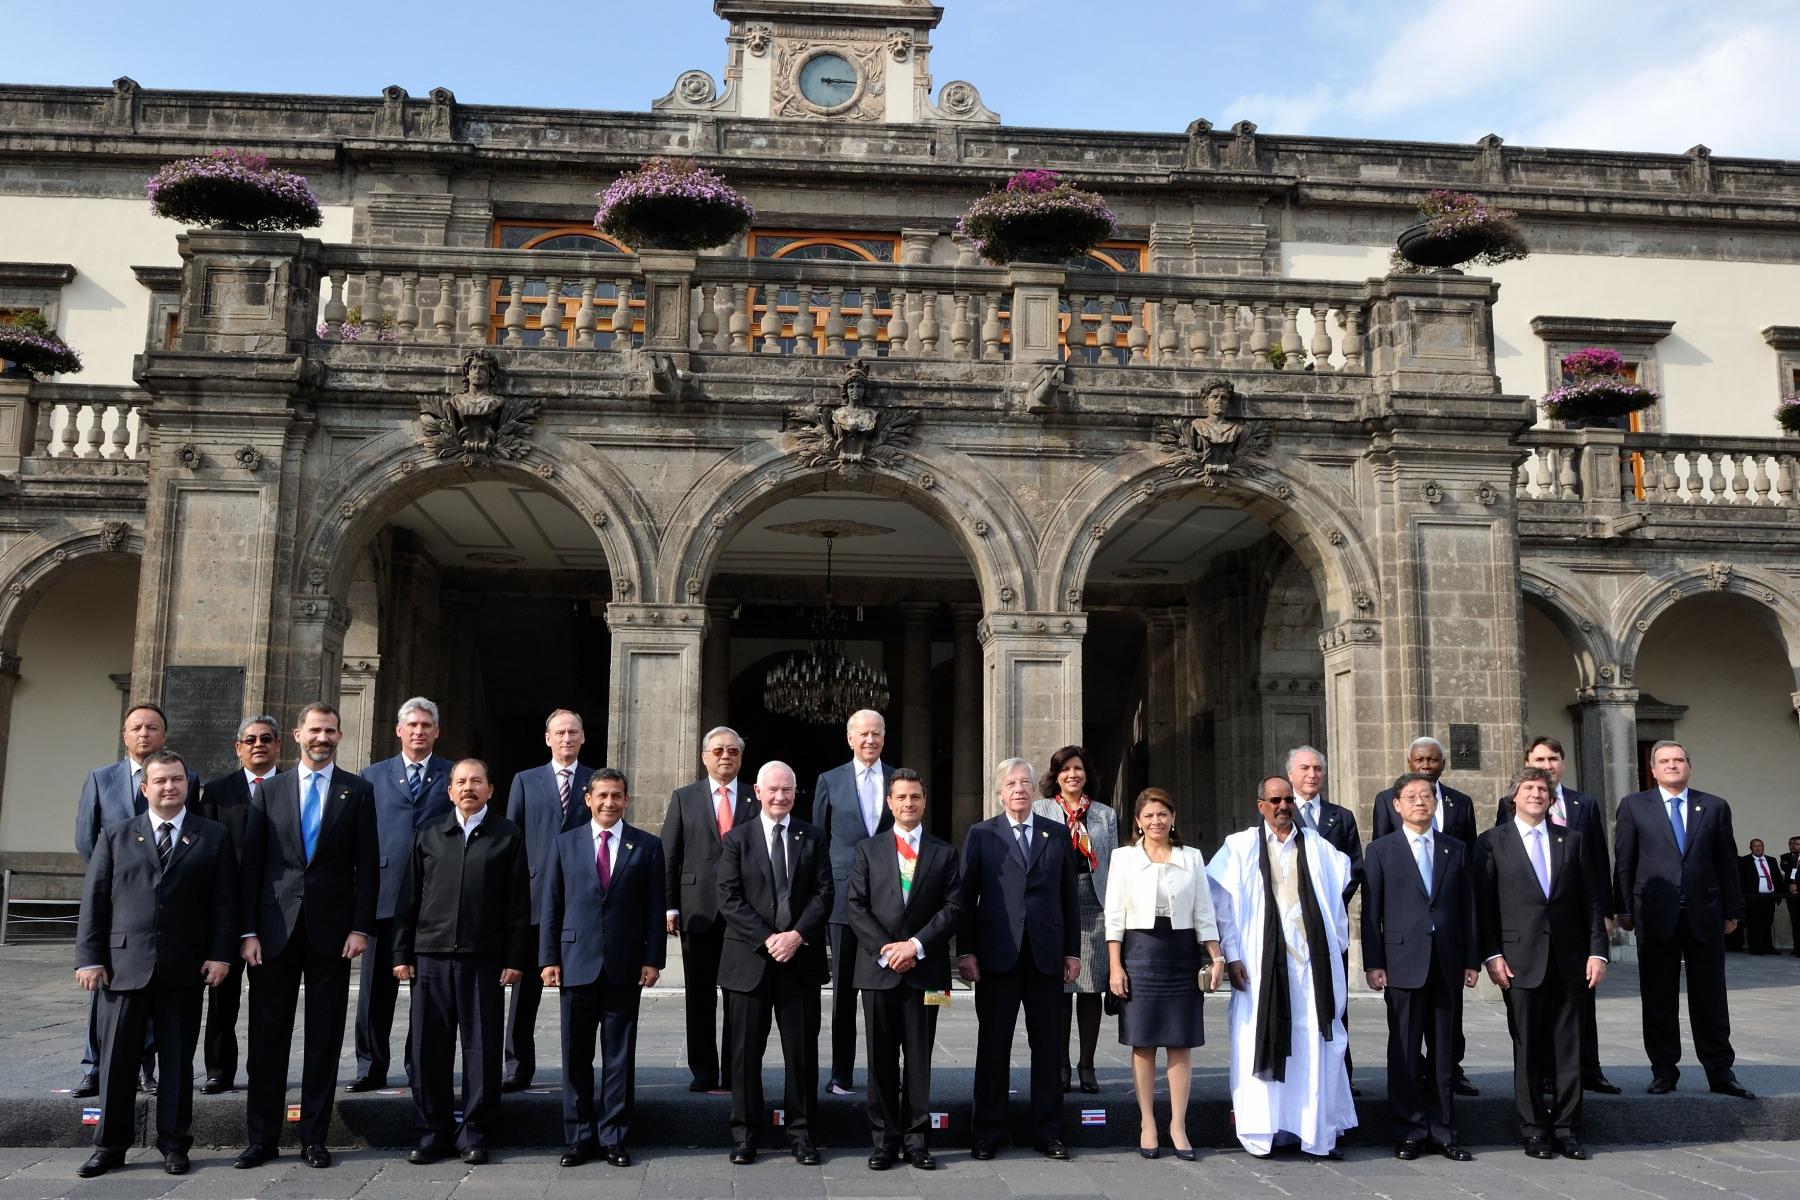 Following the inauguration, Their Excellencies also represented Canada at a state luncheon hosted by the new president, at Chapultepec Castle.